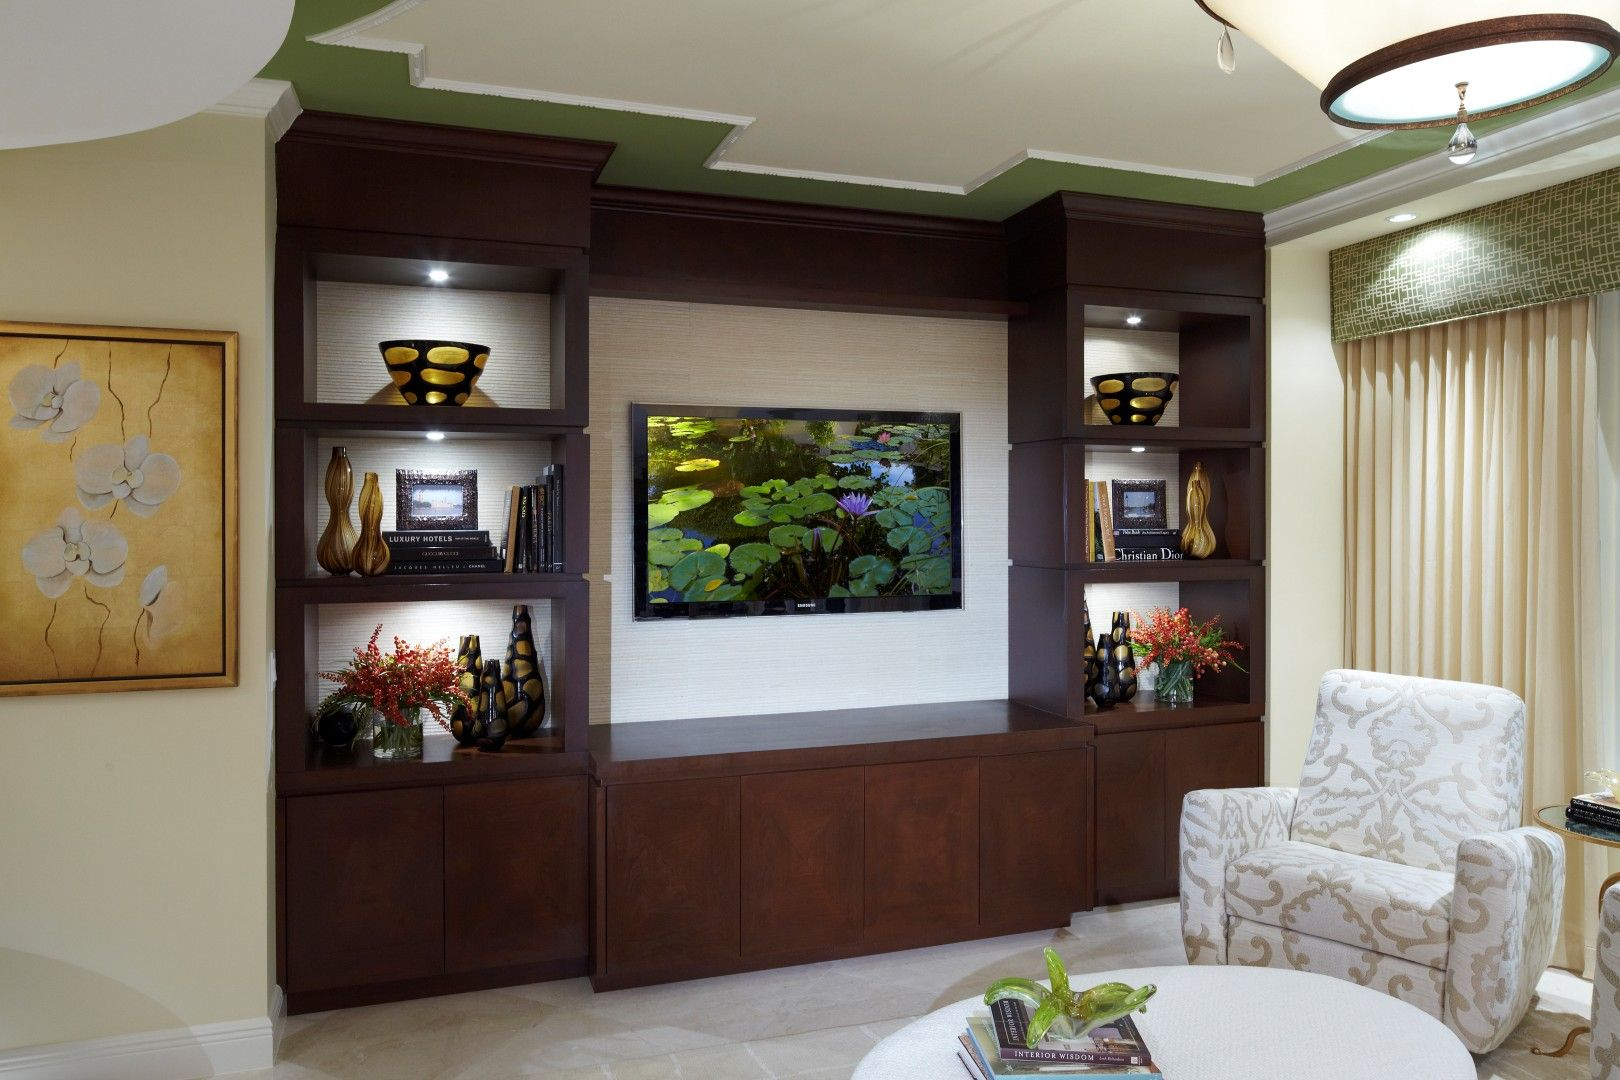 Wall Cabinets For Living Room 20 pictures designer wall units for living room delightful on